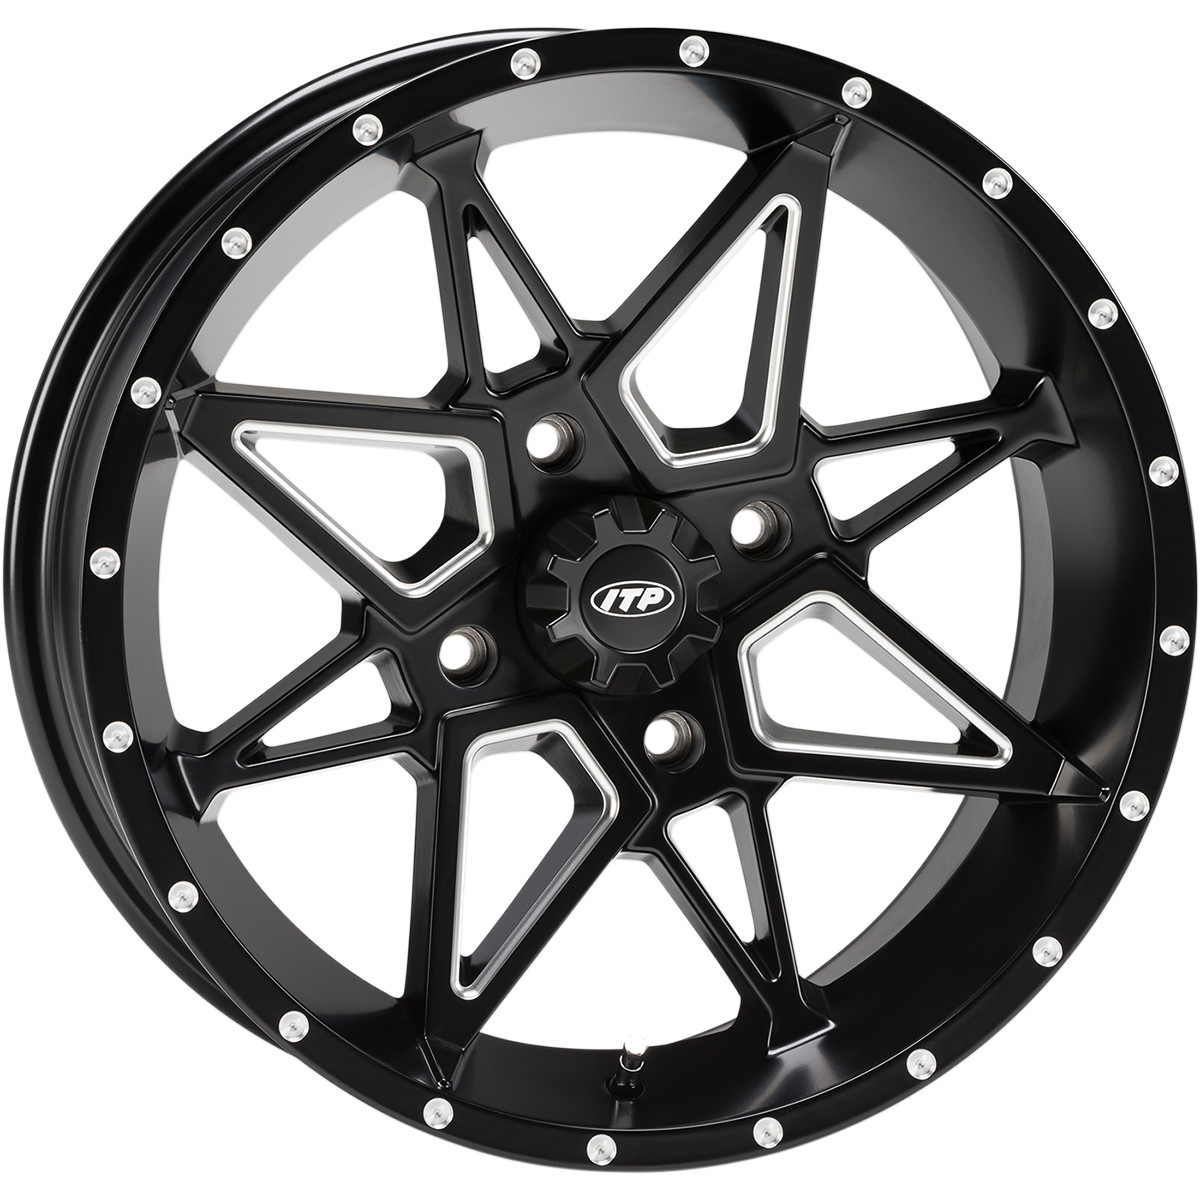 ITP 15x7 4x137 Tornado vannesarja Can-Am